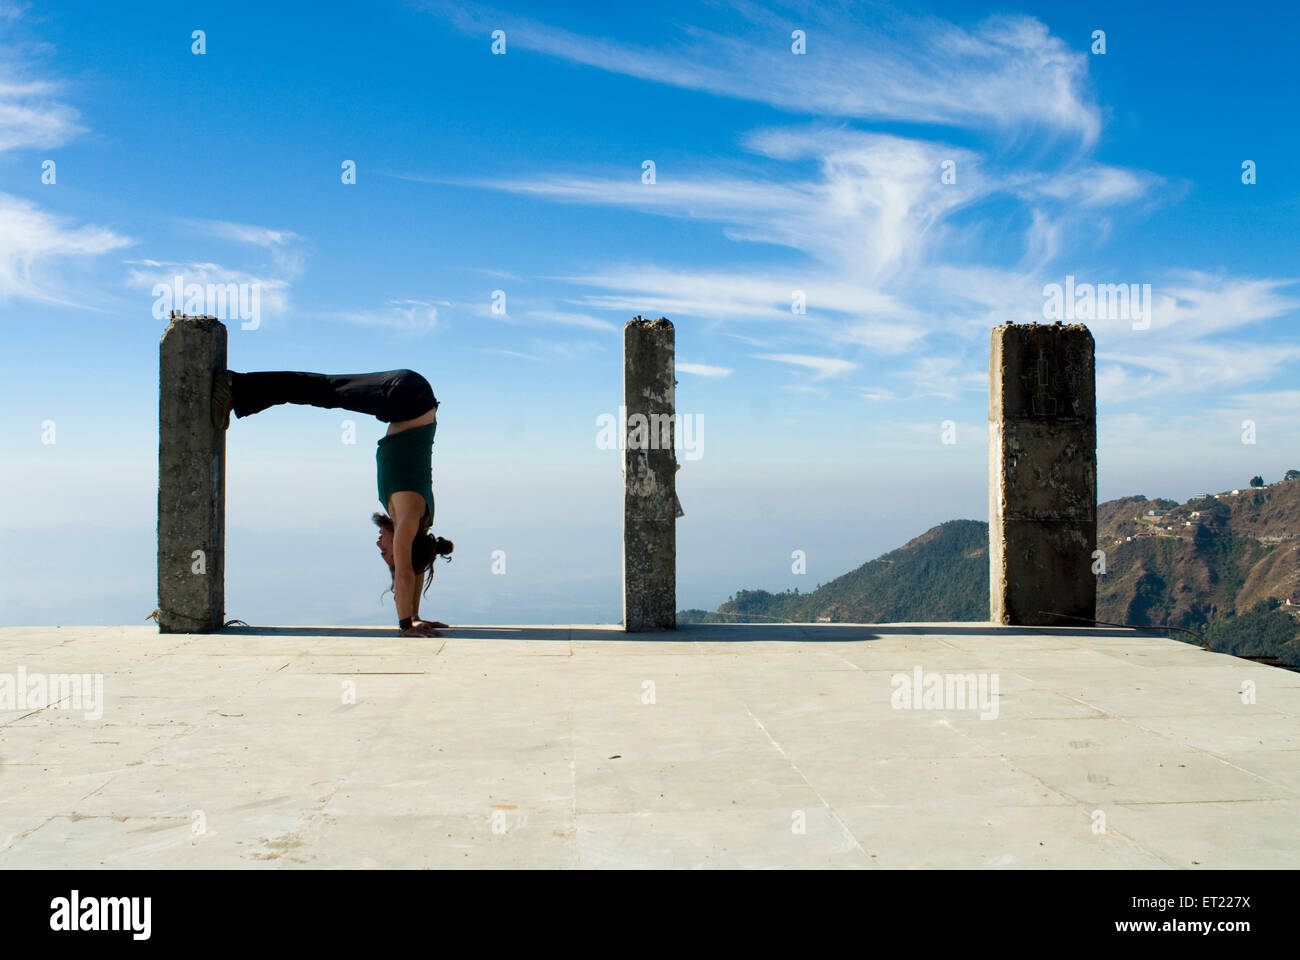 French acrobat doing perfect square in sync with  pillar by bending waist  in Mussoorie ; Dehra Dun ; Uttaranchal - Stock Image